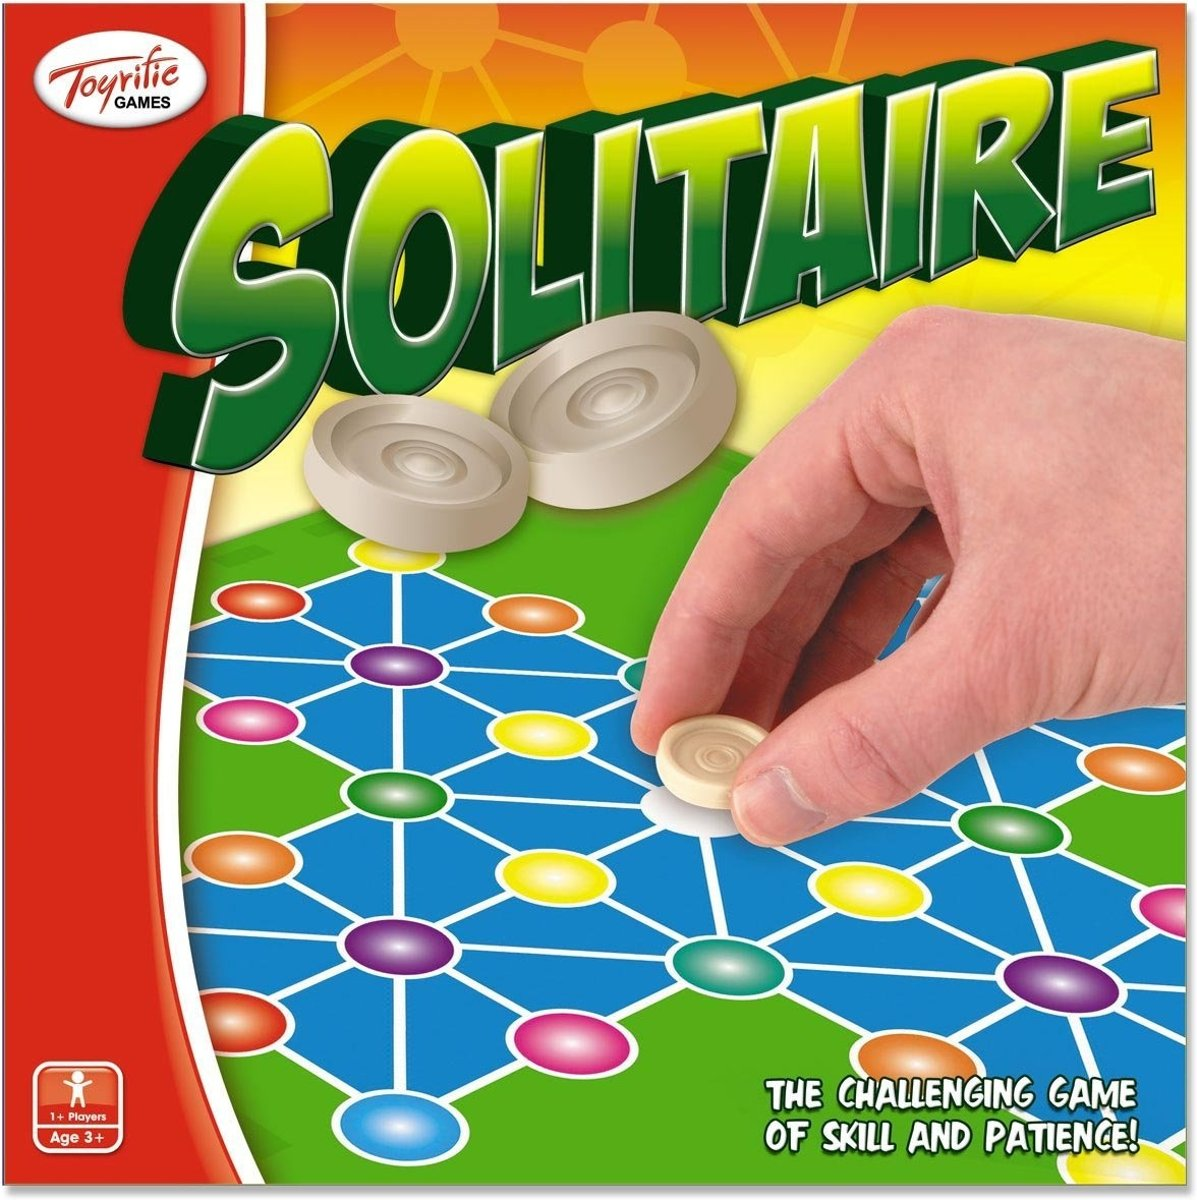 Toyrific Solitaire